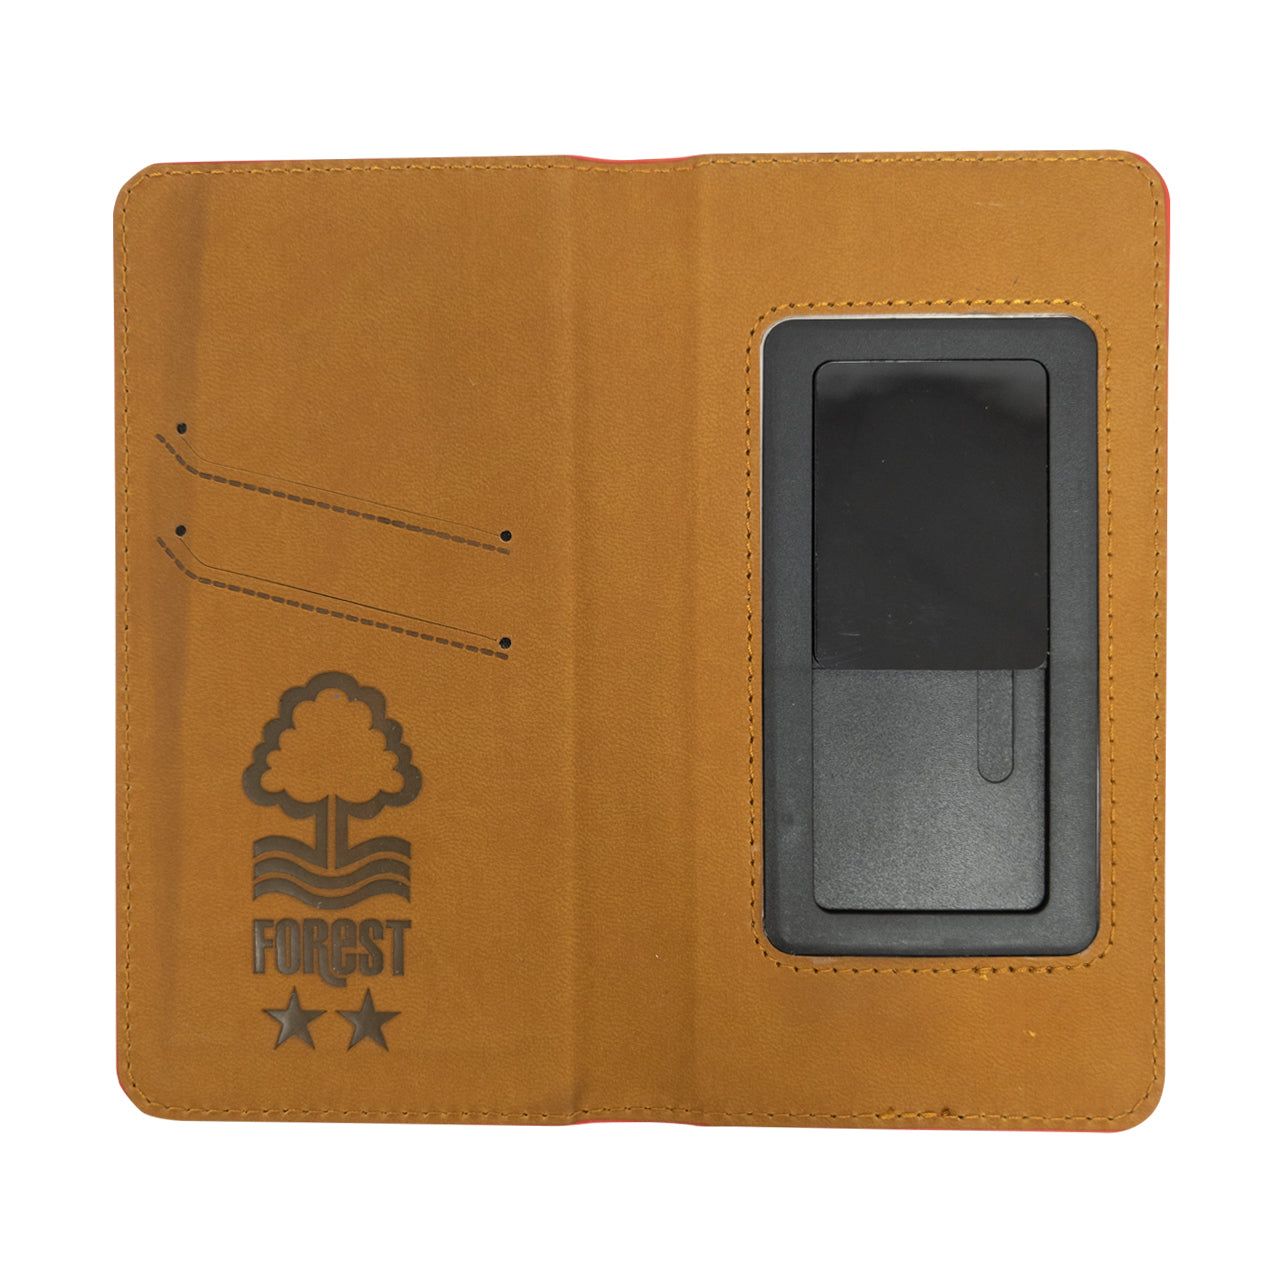 NFFC Universal Smartphone Case - Large